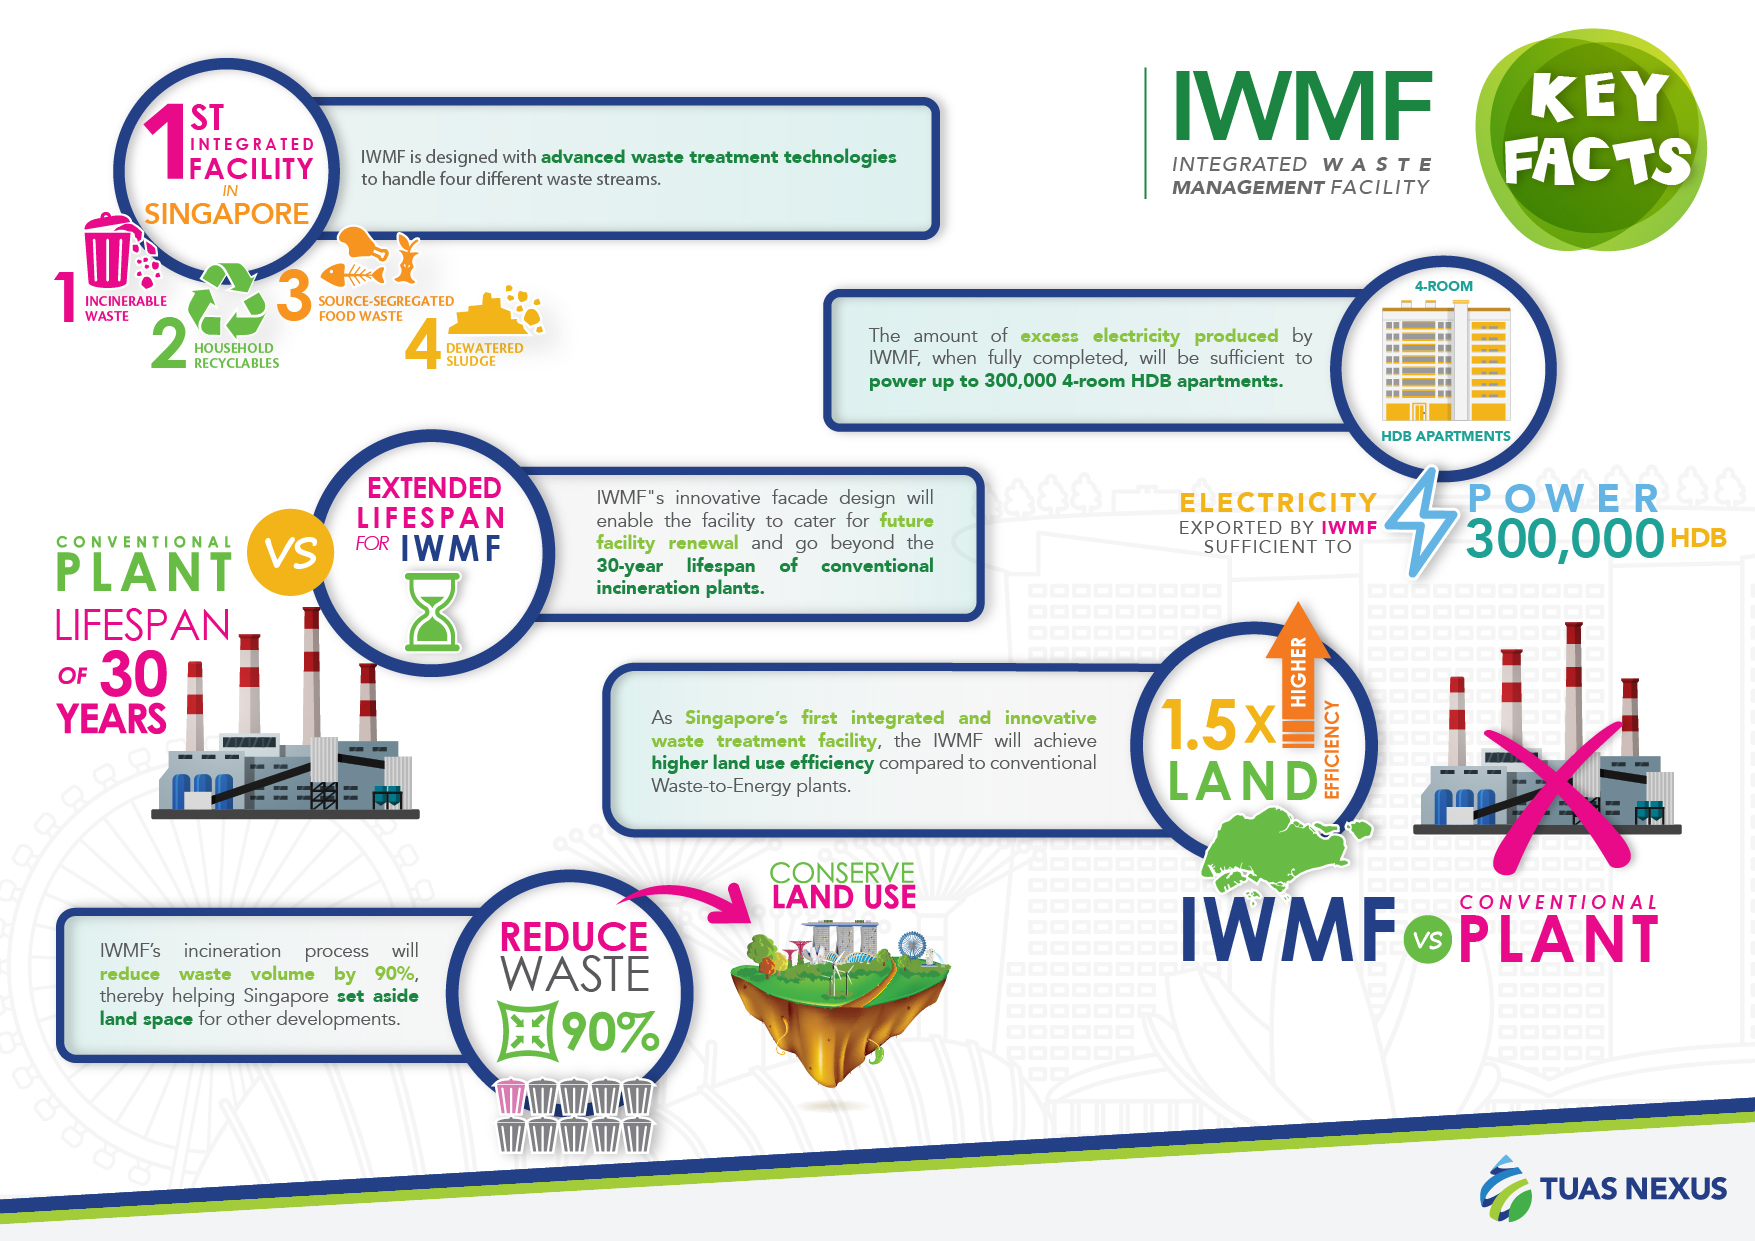 Infographic_of_Integrated_Waste_Management_Facility_IWMF_Image_creditNEAandPUB